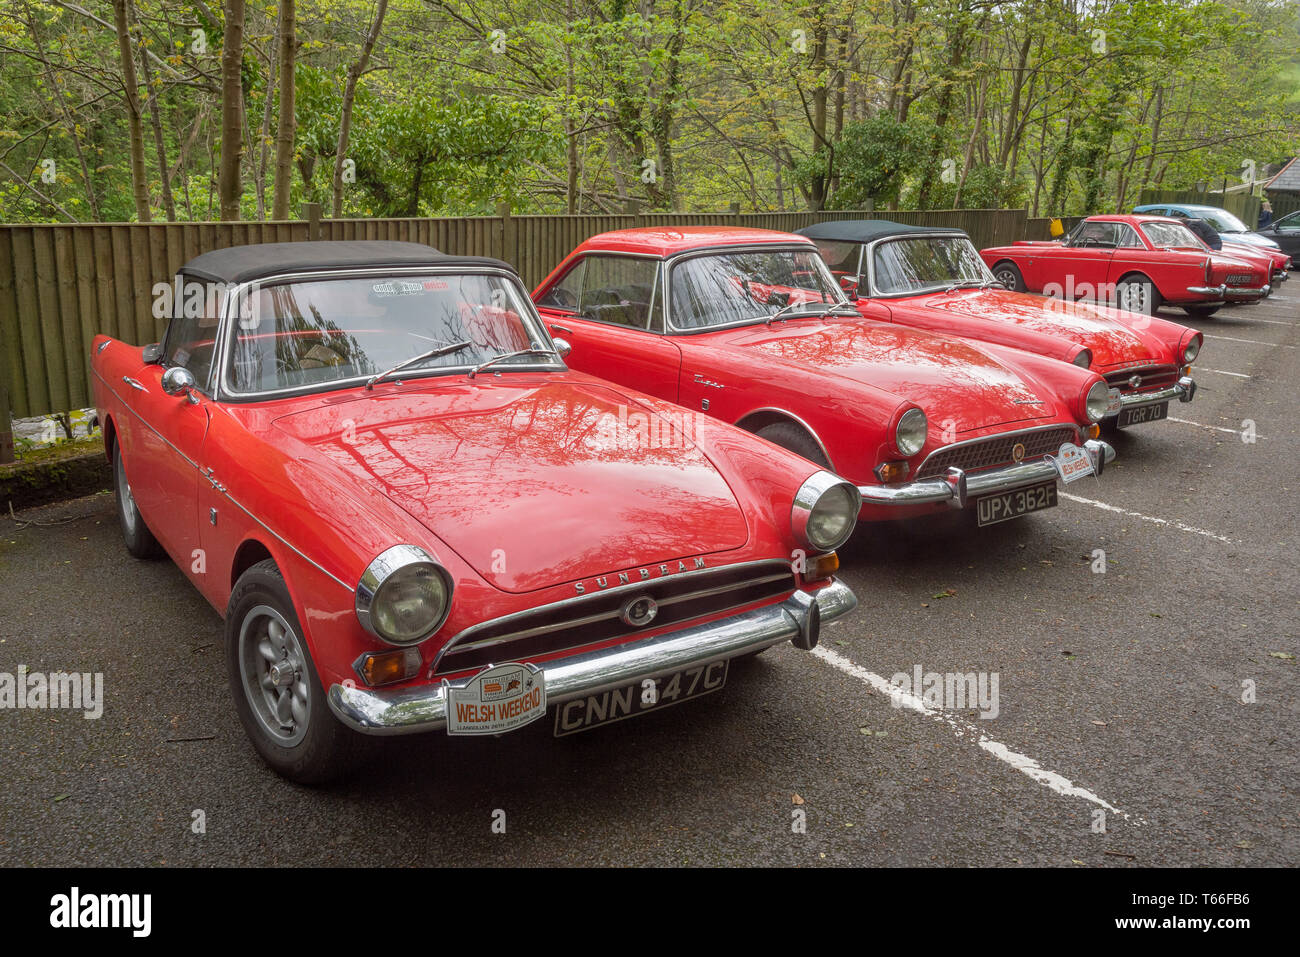 Concors delegance for Sunbeam Tiger vintage sports cars. - Stock Image